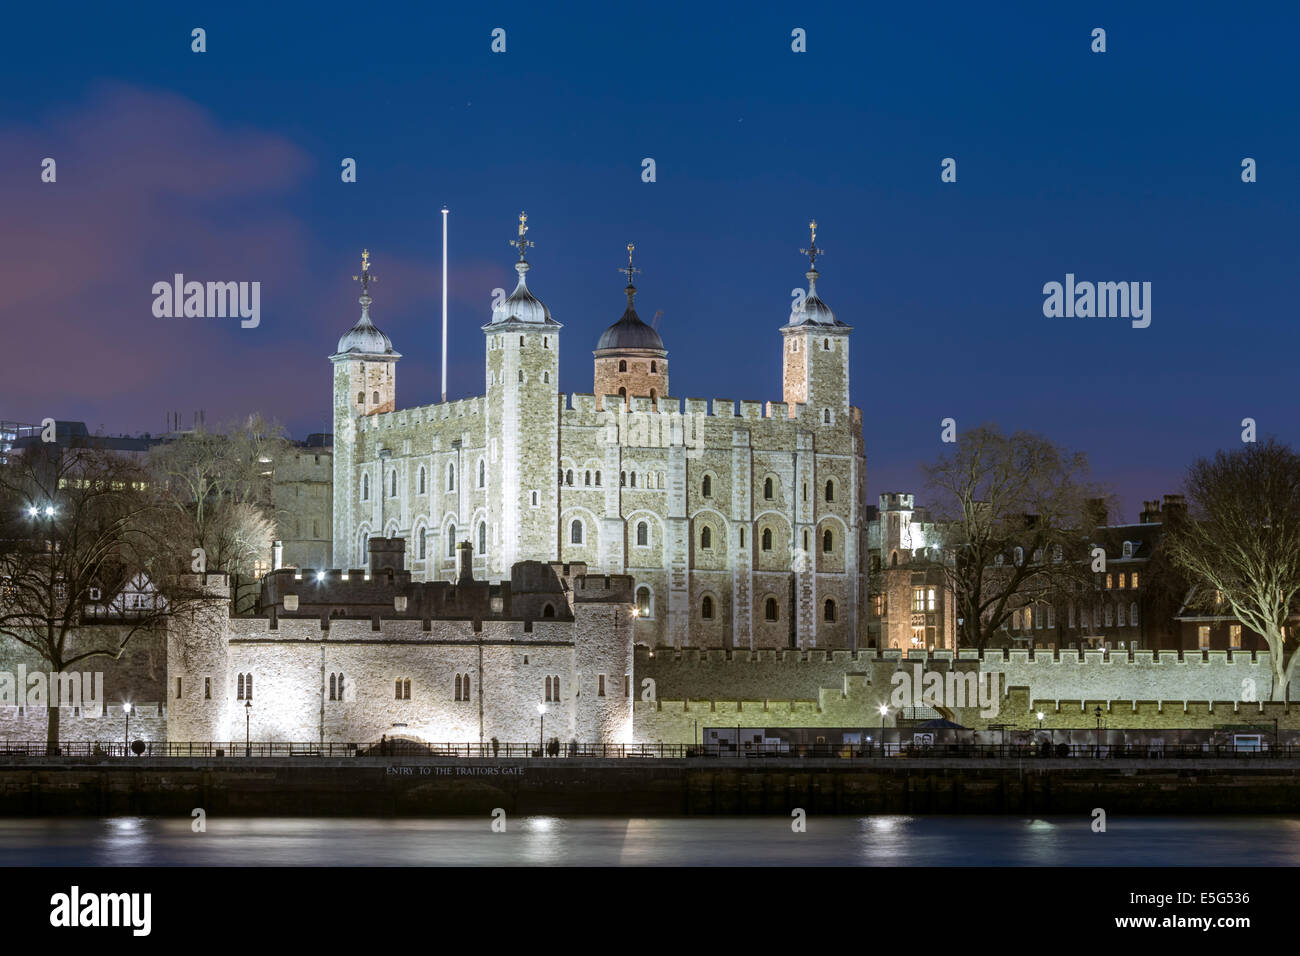 The Tower of London castle and royal palace, a UNESCO World Heritage Sight, illuminated at night, London, England - Stock Image